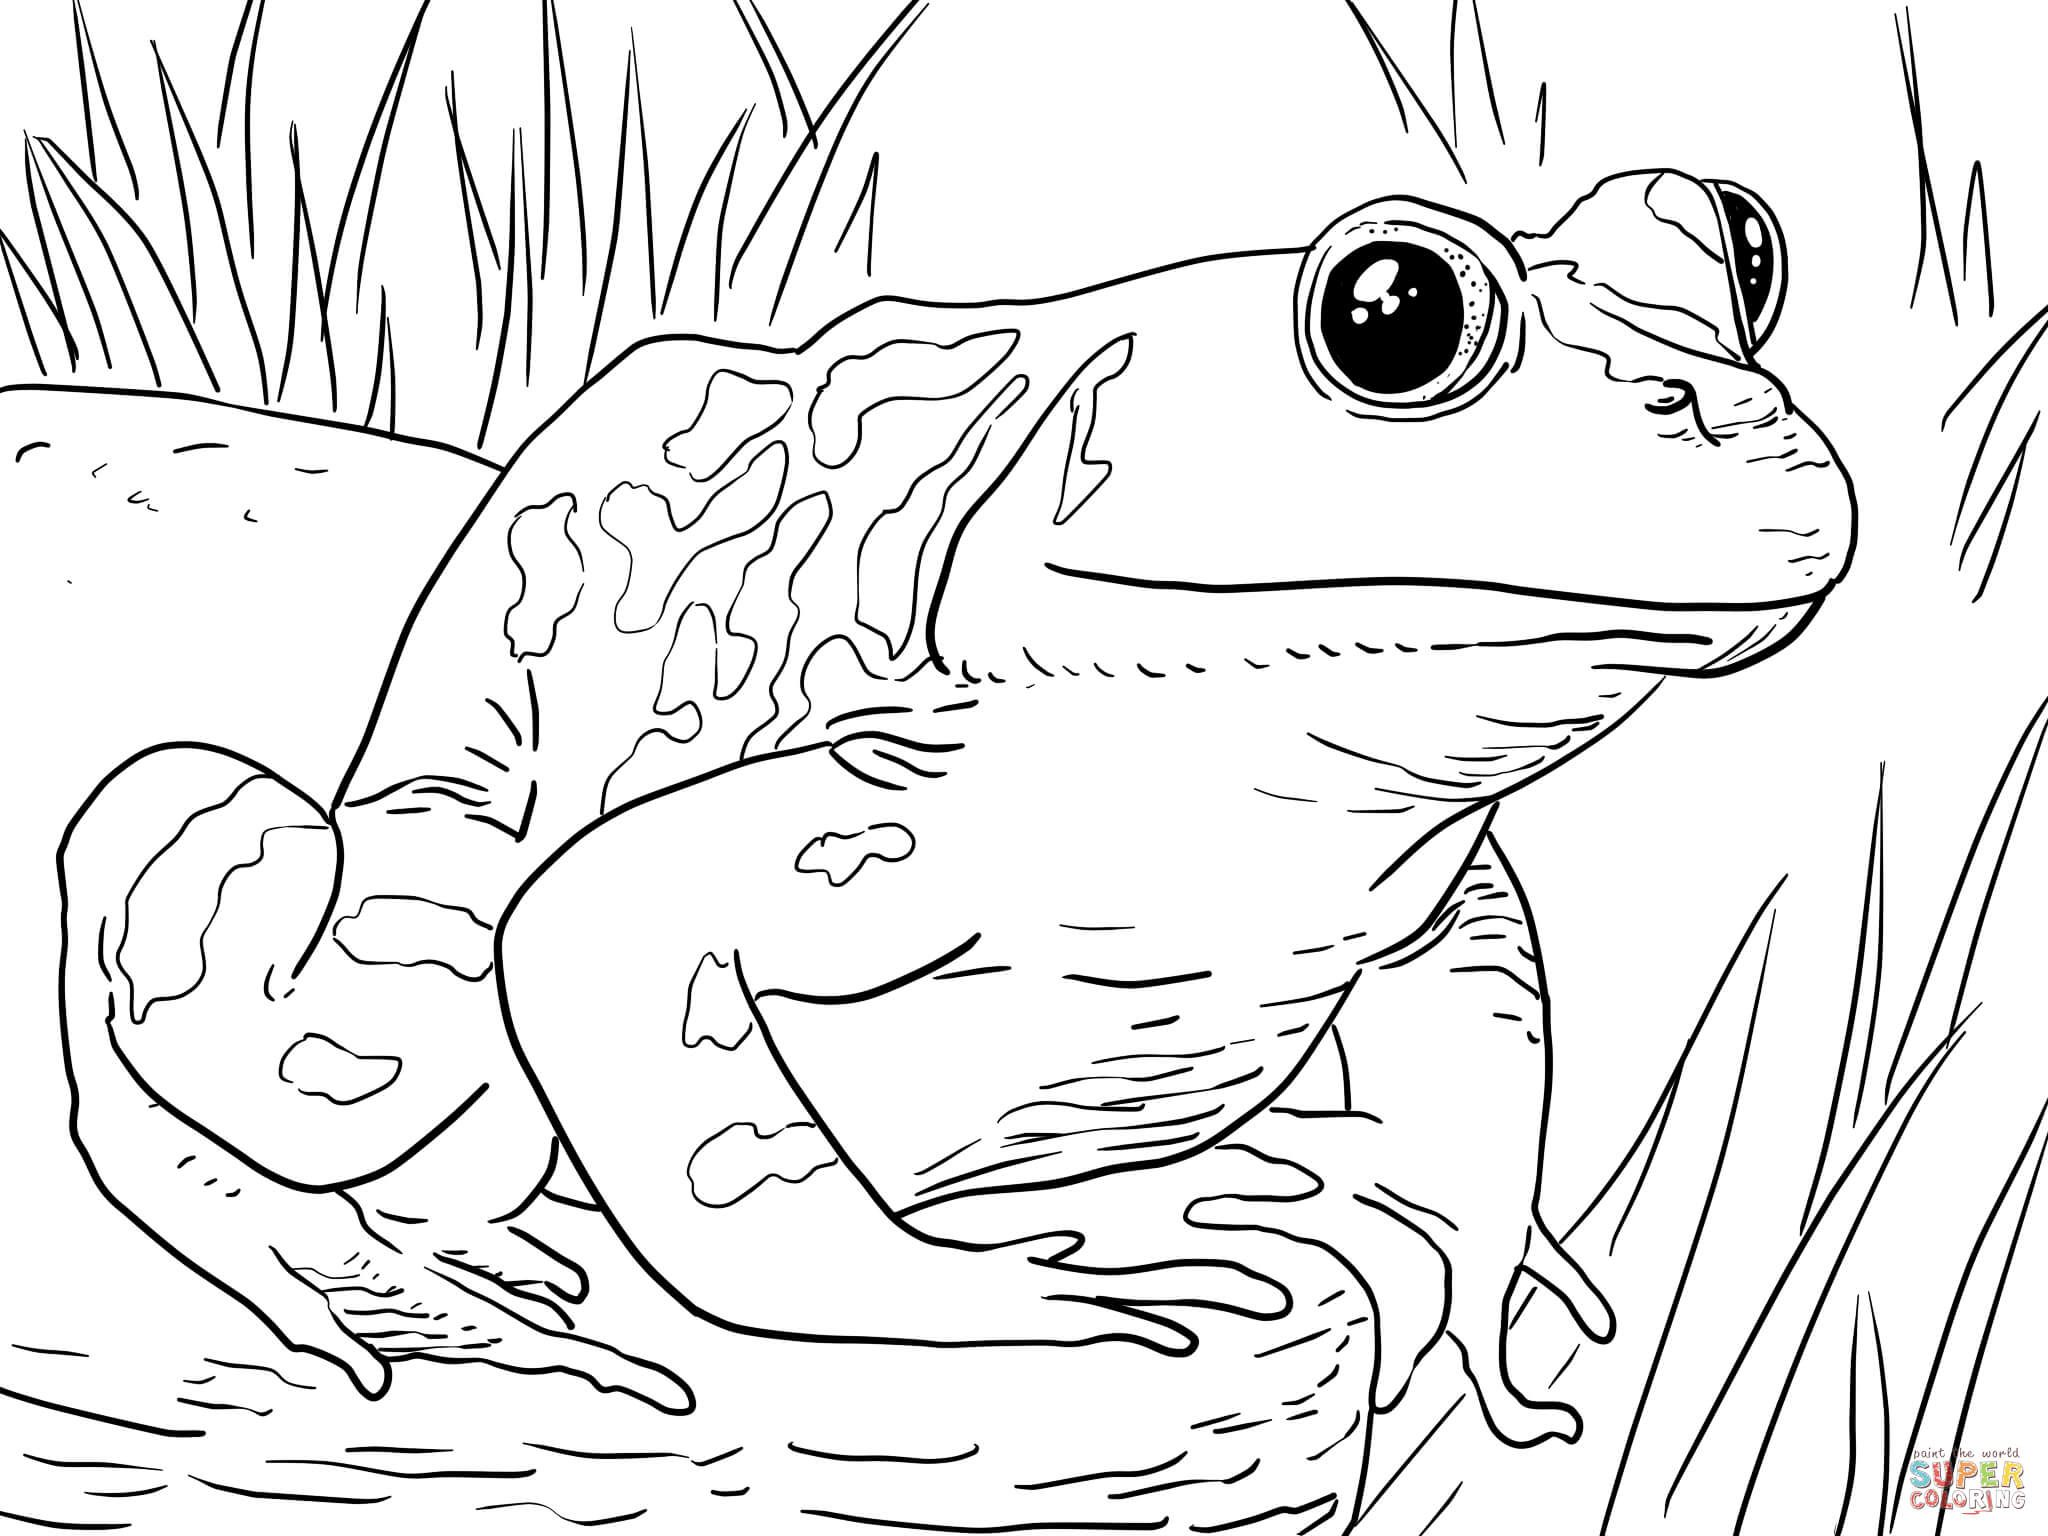 This Frog Coloring Sheet Is The Perfect Animal Coloring Pdf To